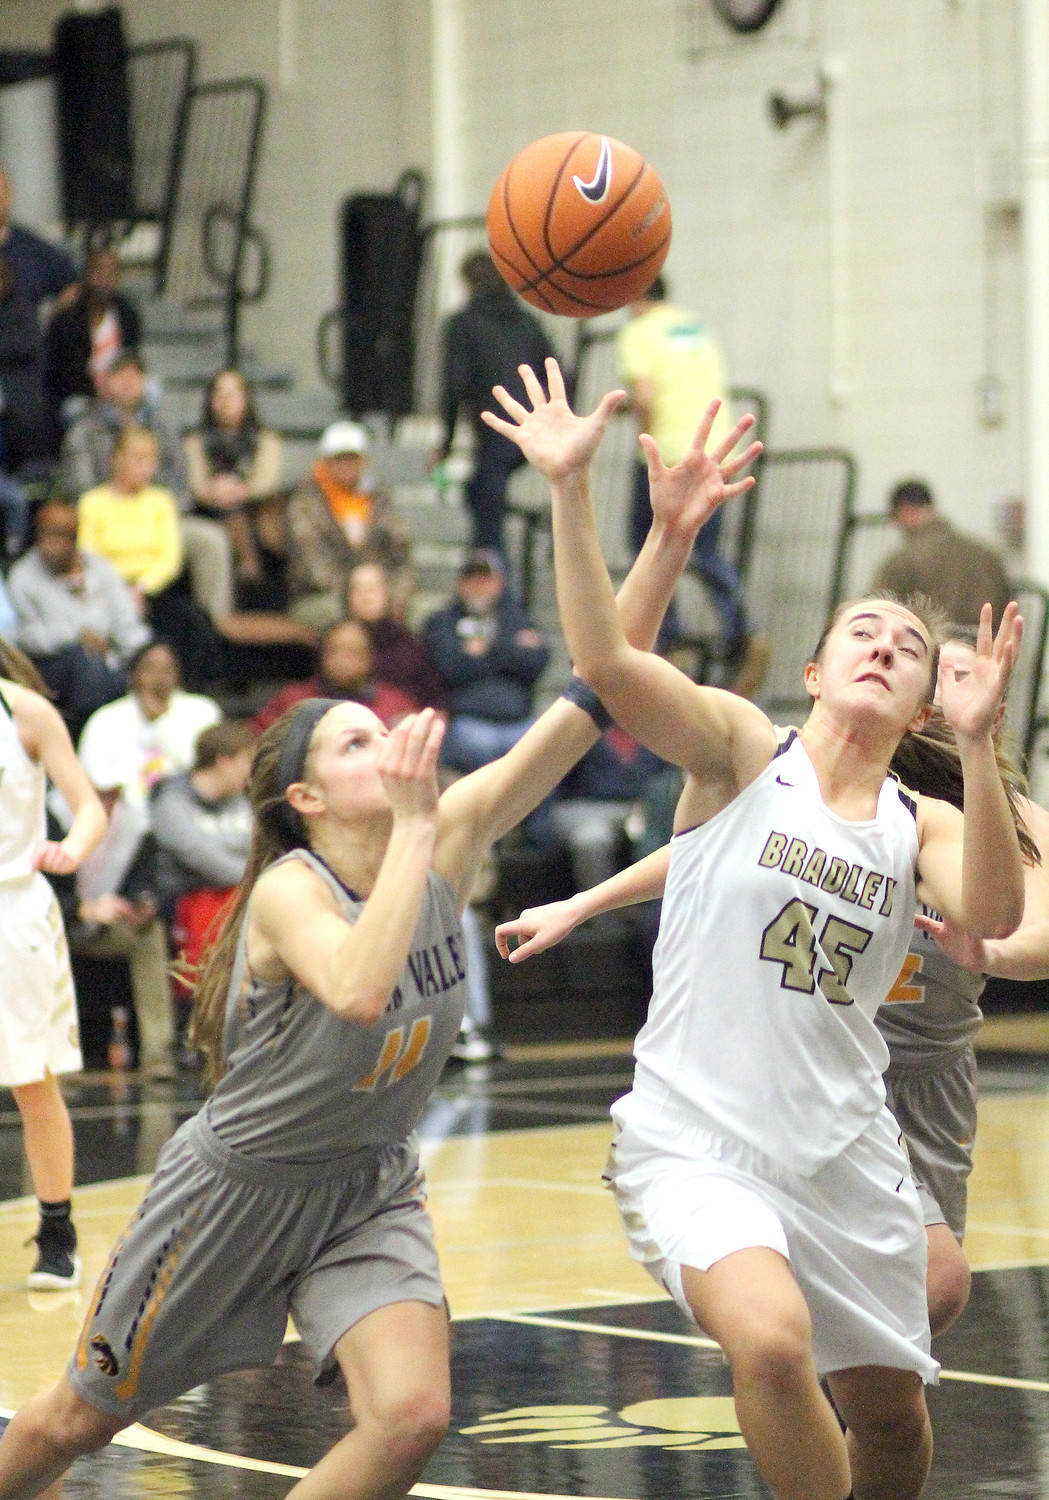 WALKER VALLEY senior Emily Anderson (11) and Bradley Central senior Hannah Lombard (45) battle for a loose ball during Friday evening's cross-county rivalry game at Jim Smiddy Arena.